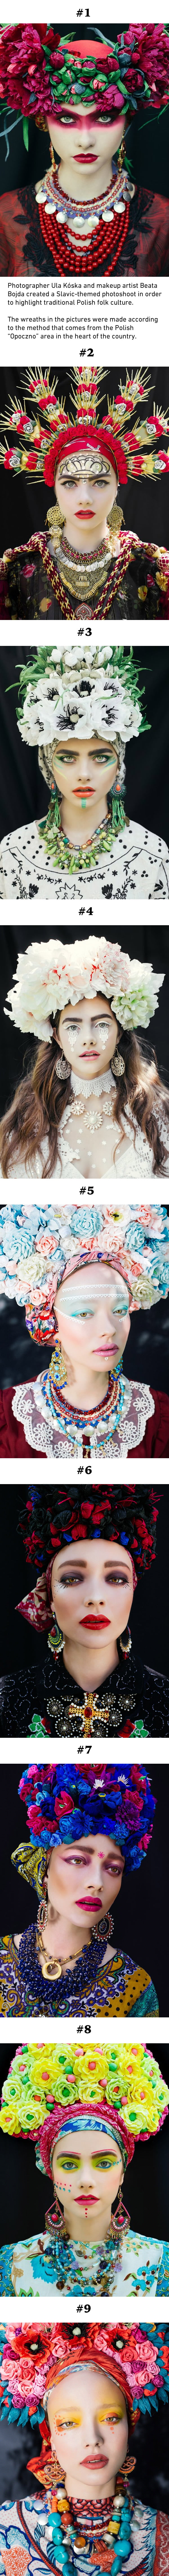 Polish Artists Recreate Stunning Photos With Slavic Wreaths (Ula Kóska & Beata Bojda)